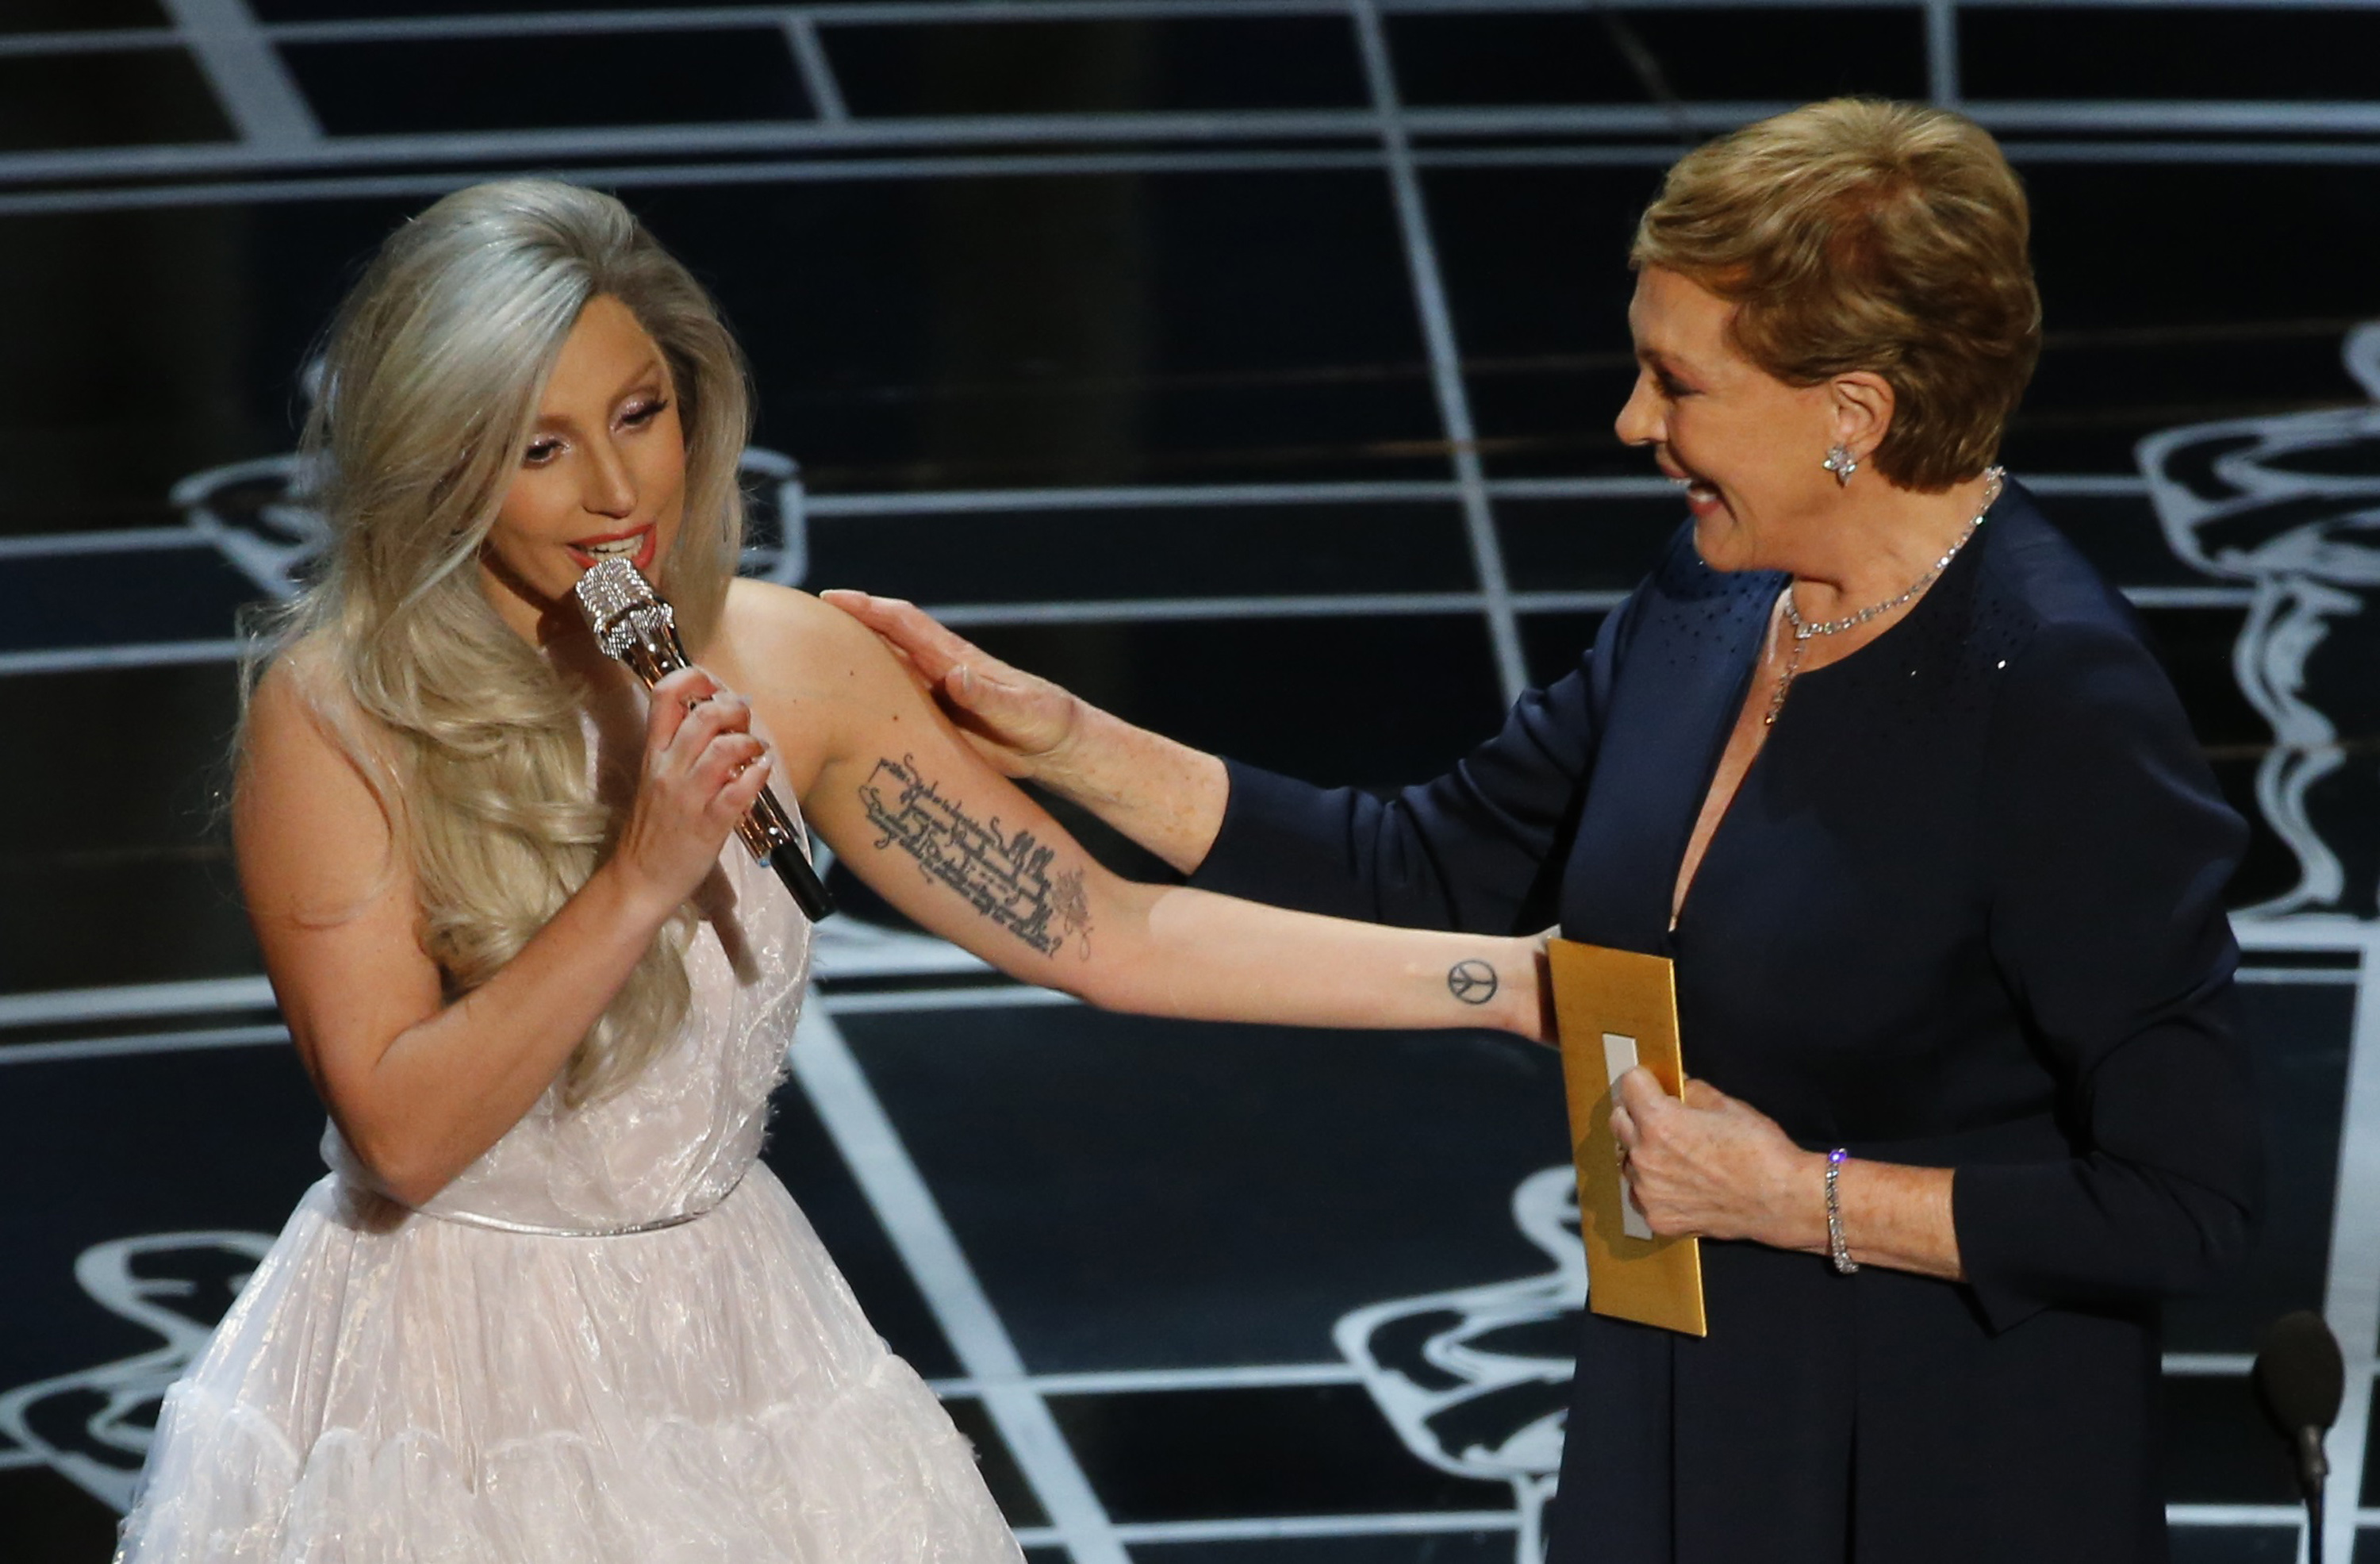 Lady Gaga pays tribute to Julie Andrews after performing songs from the Sound of Music at the 87th Academy Awards in Hollywood, California